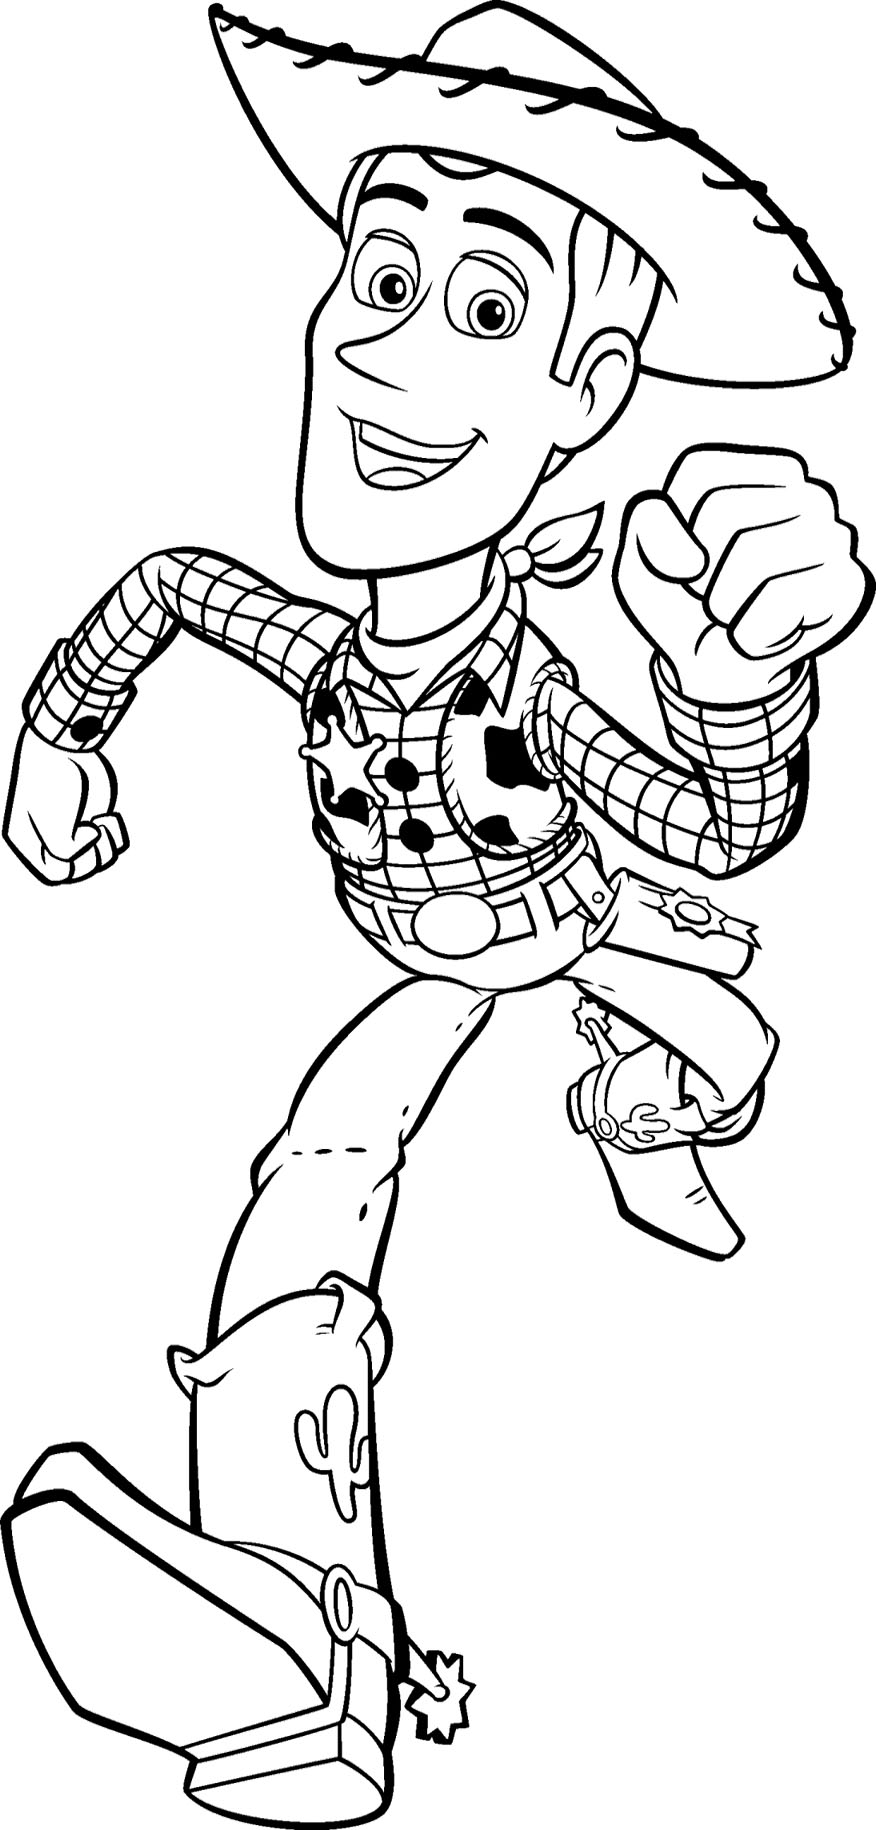 coloring sheet toy story coloring pages free printable toy story coloring pages pages toy story coloring coloring sheet